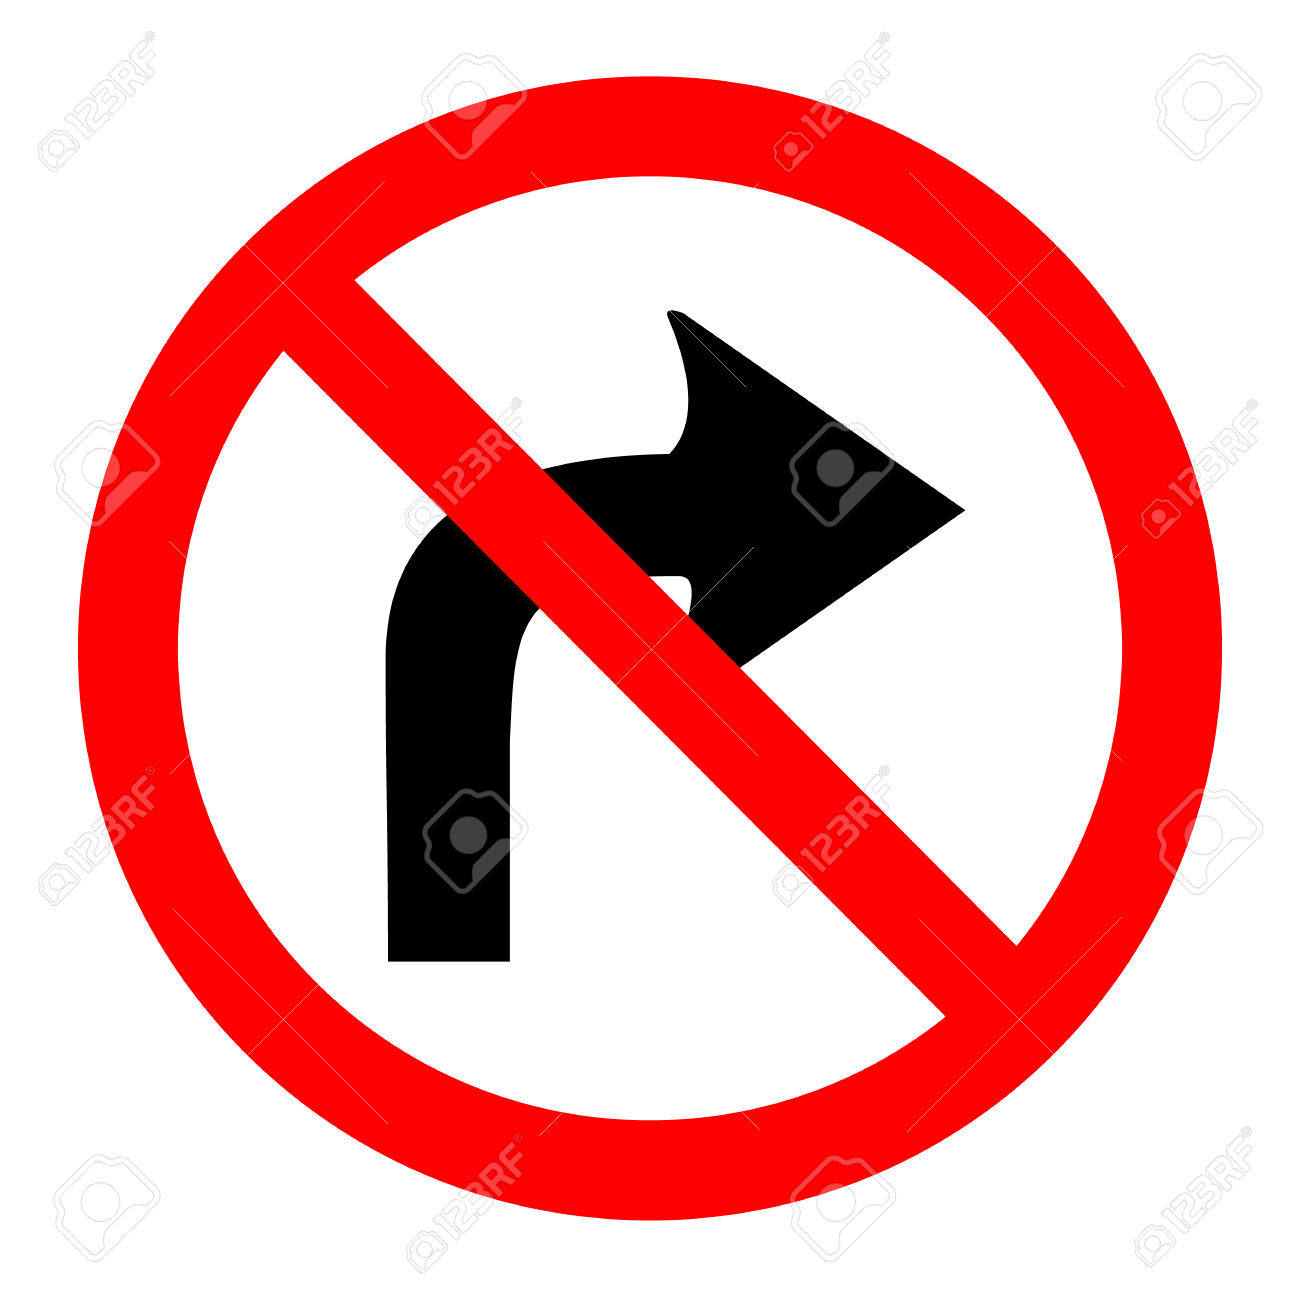 Illustration Of No Right Turn Round Sign On White Background.